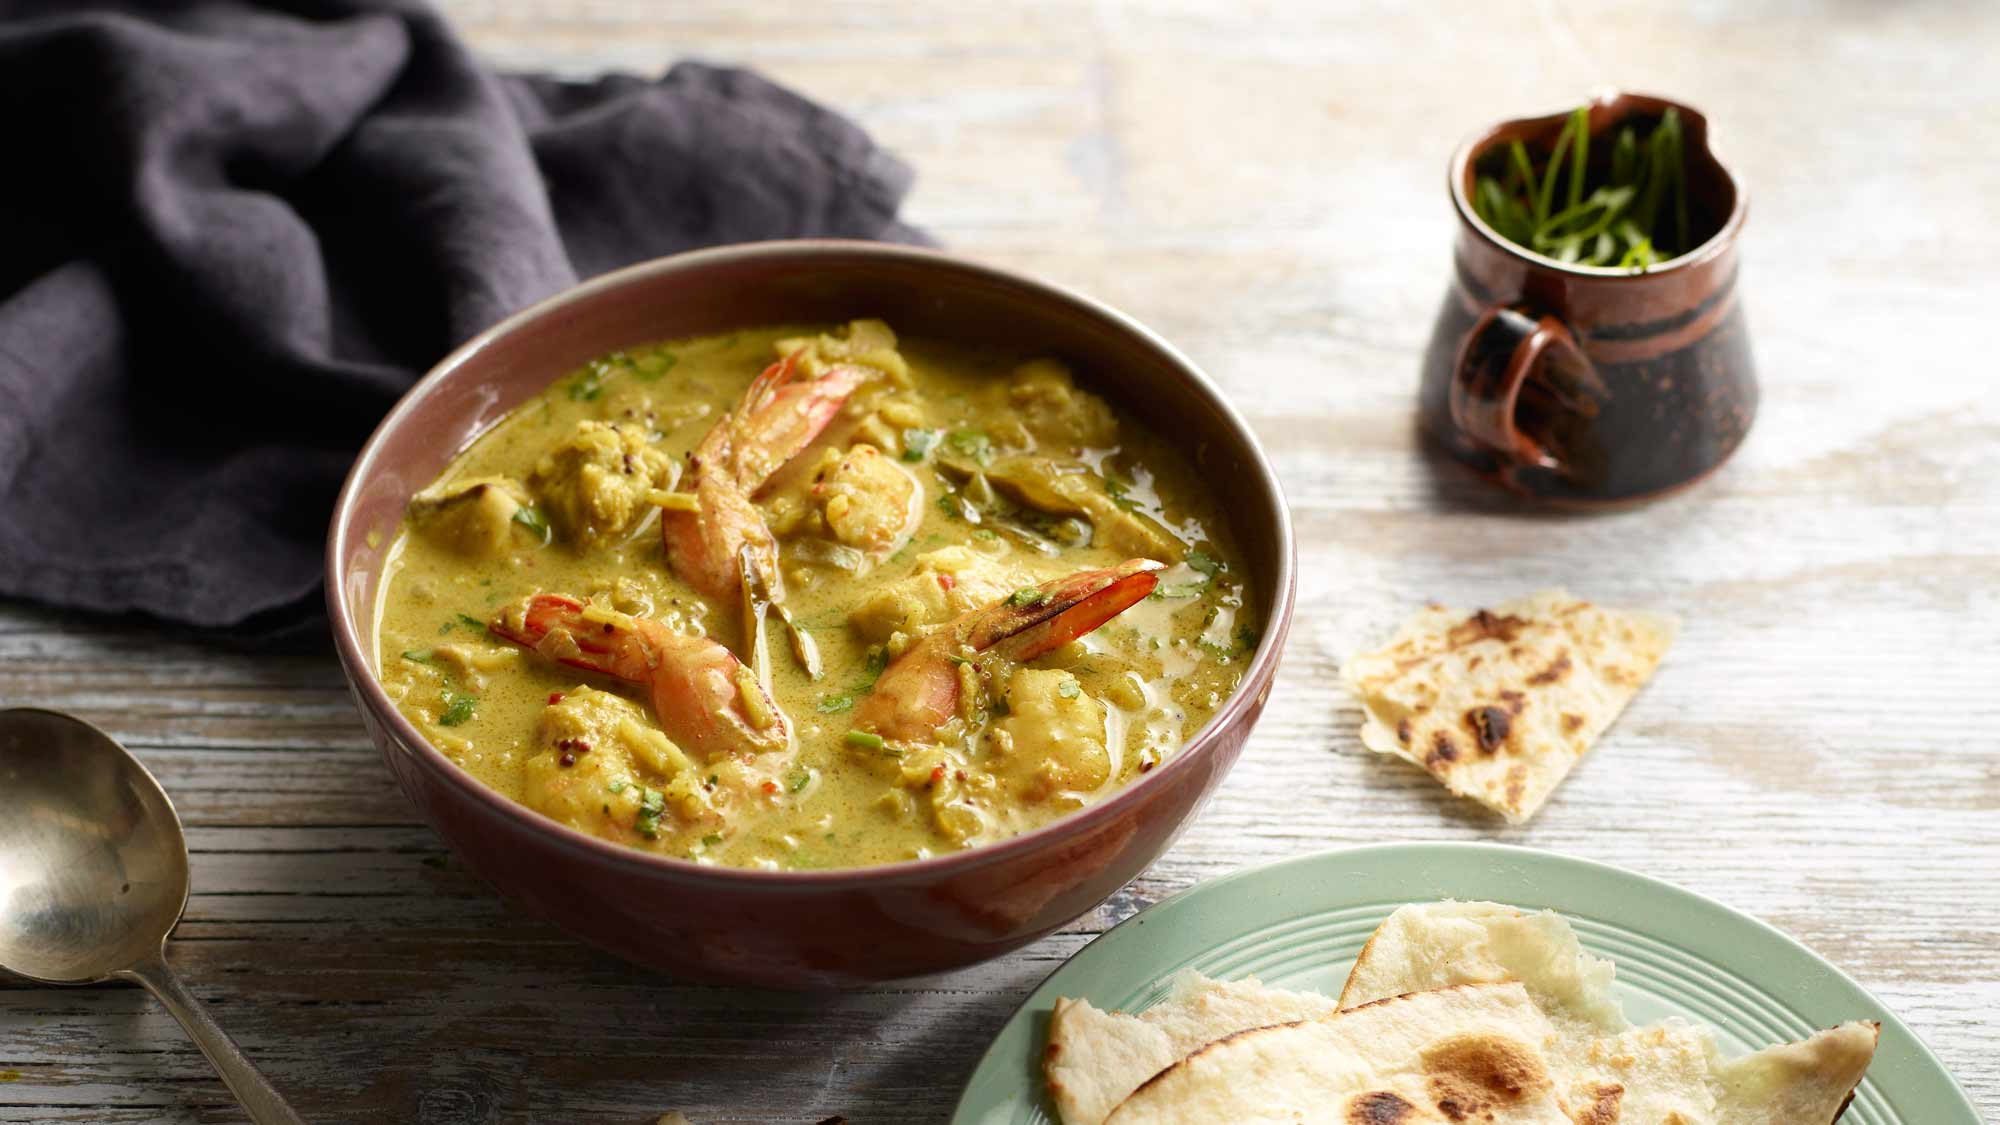 Curried Coconut Rice Fish Soup Mccormick Australia